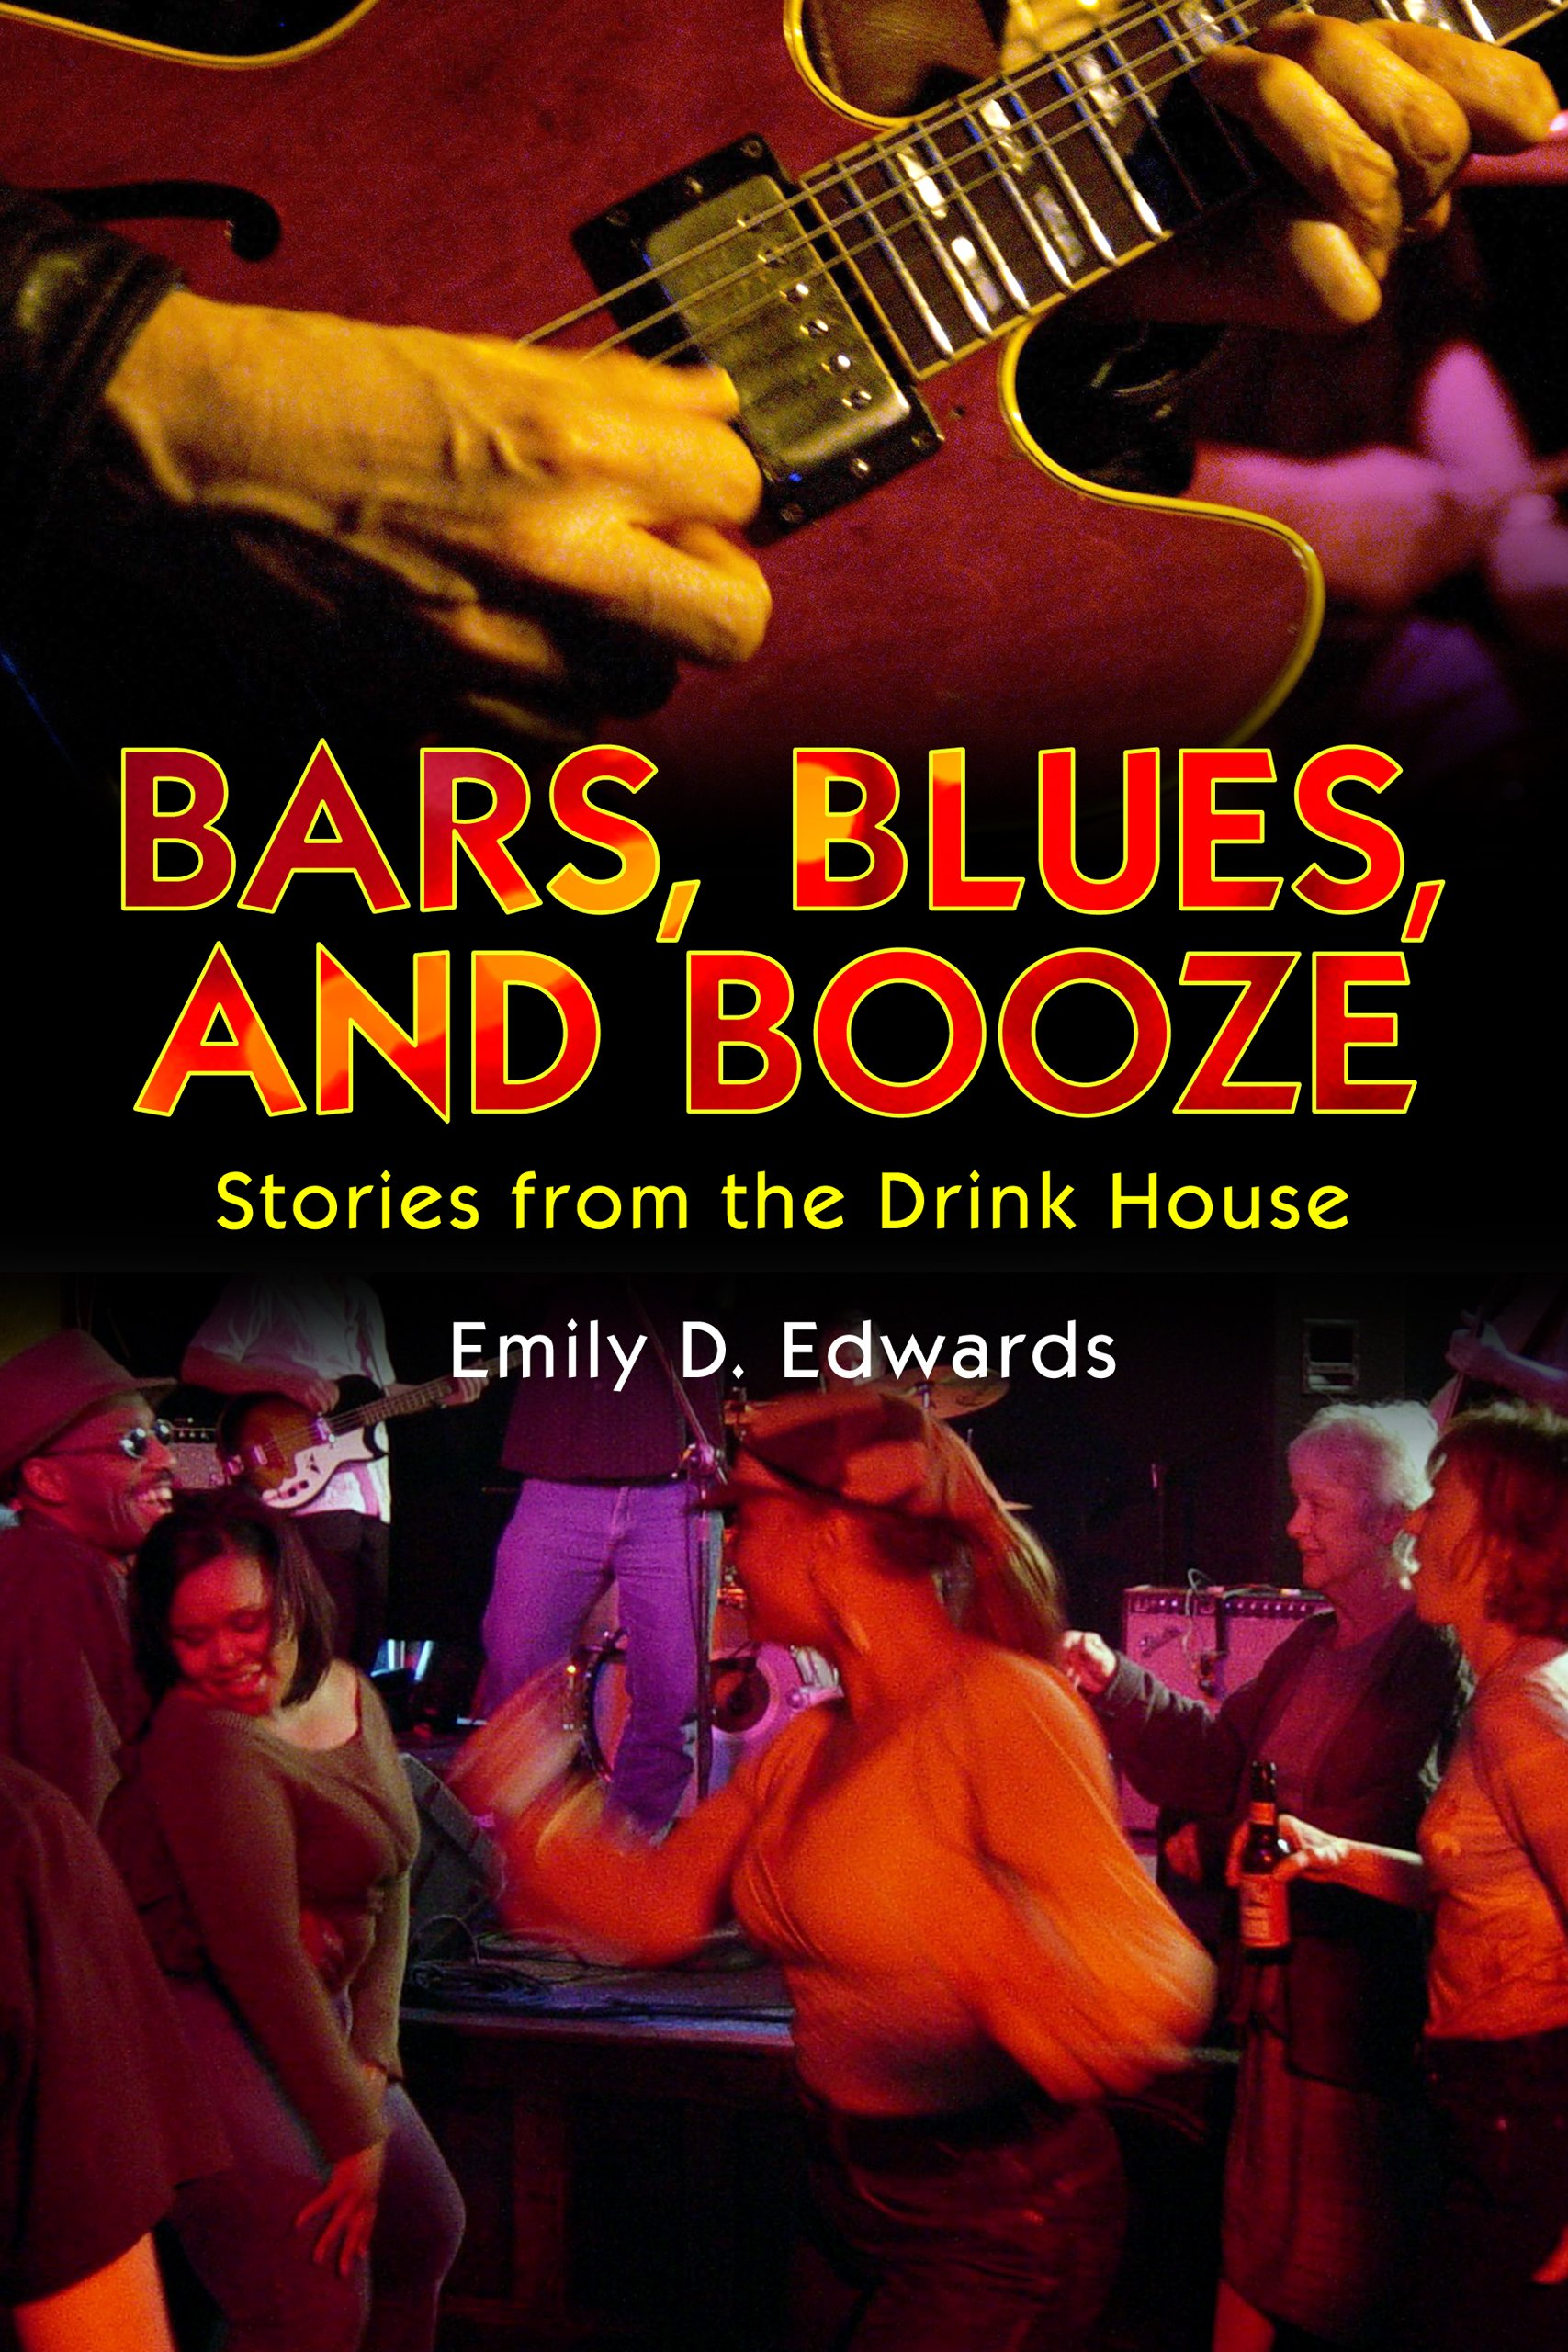 bars-blues-and-booze-stories-from-the-drink-house-american-made-music-series